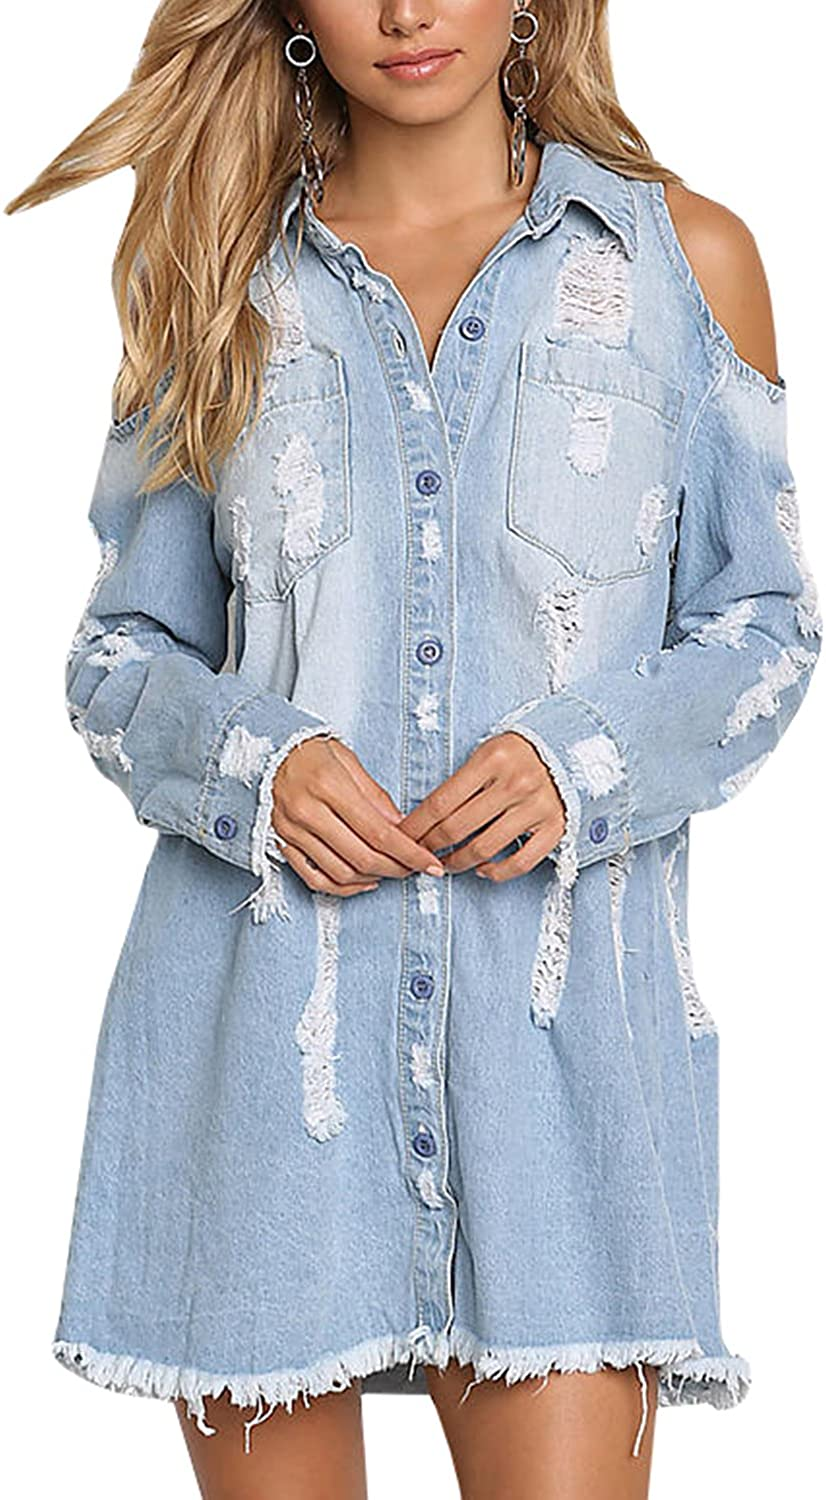 Meilidress Womens Cold Shoulder Distressed Demin Shirt Dresses Button Down Long Sleeve Frayed Jeans Jacket